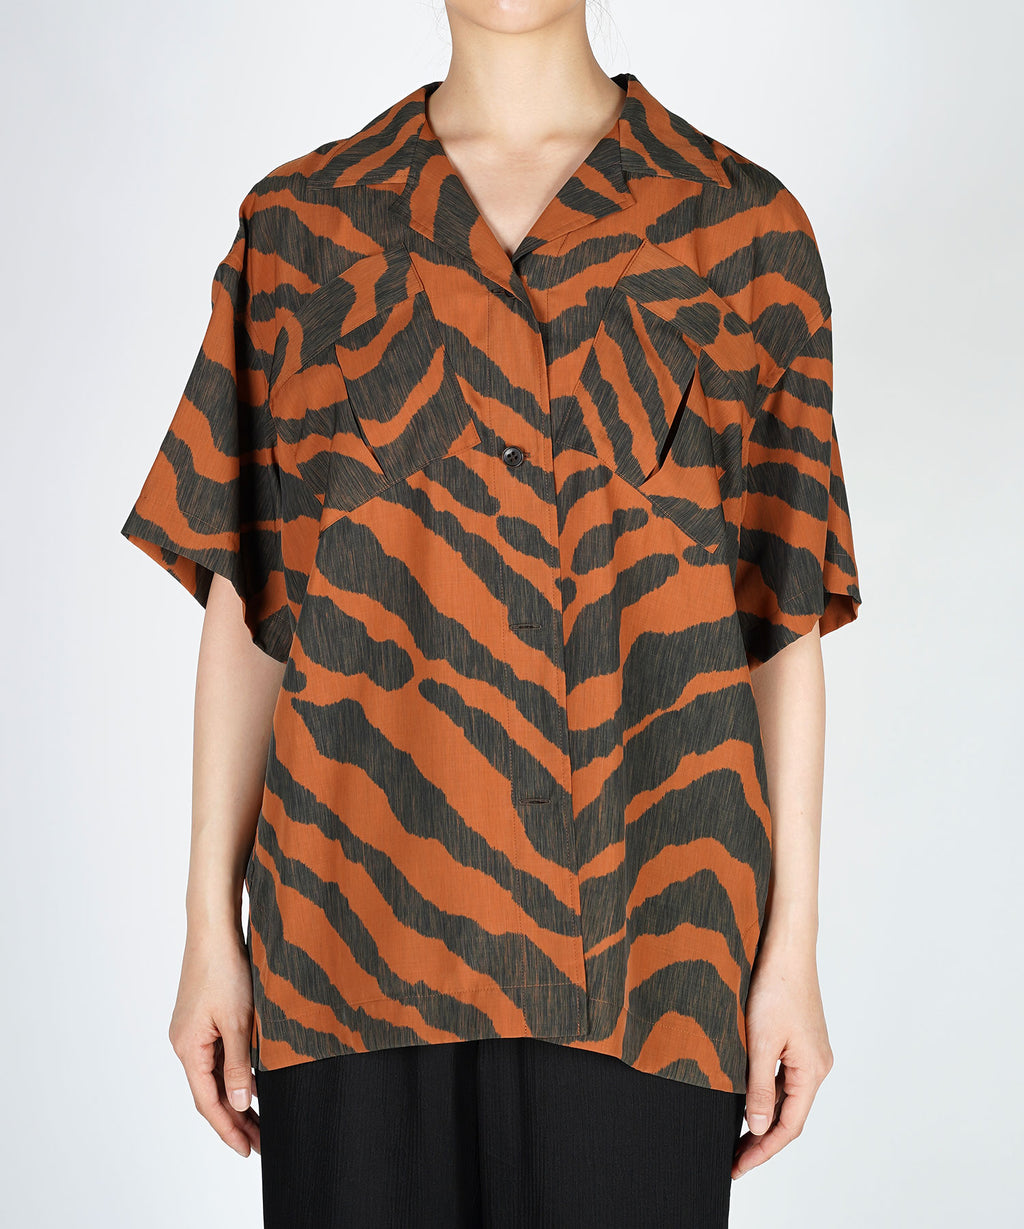 Zebra open collar shirt